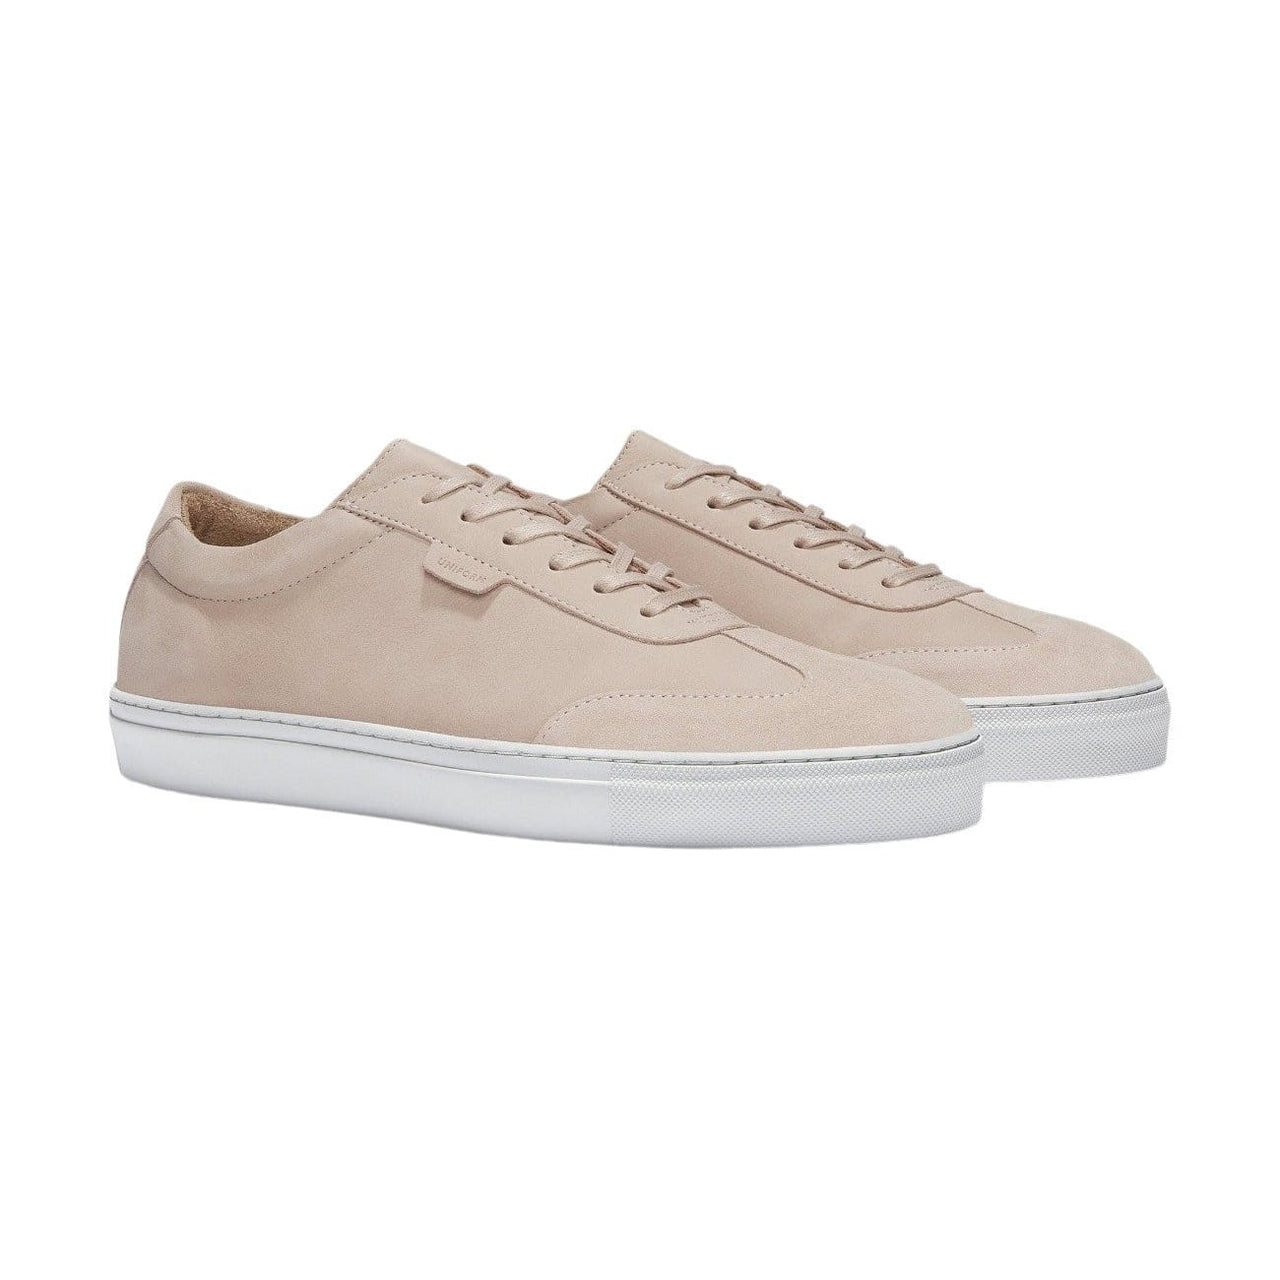 UNIFORM STANDARD Footwear Women's SERIES 3 Blush Nubuck Sneaker